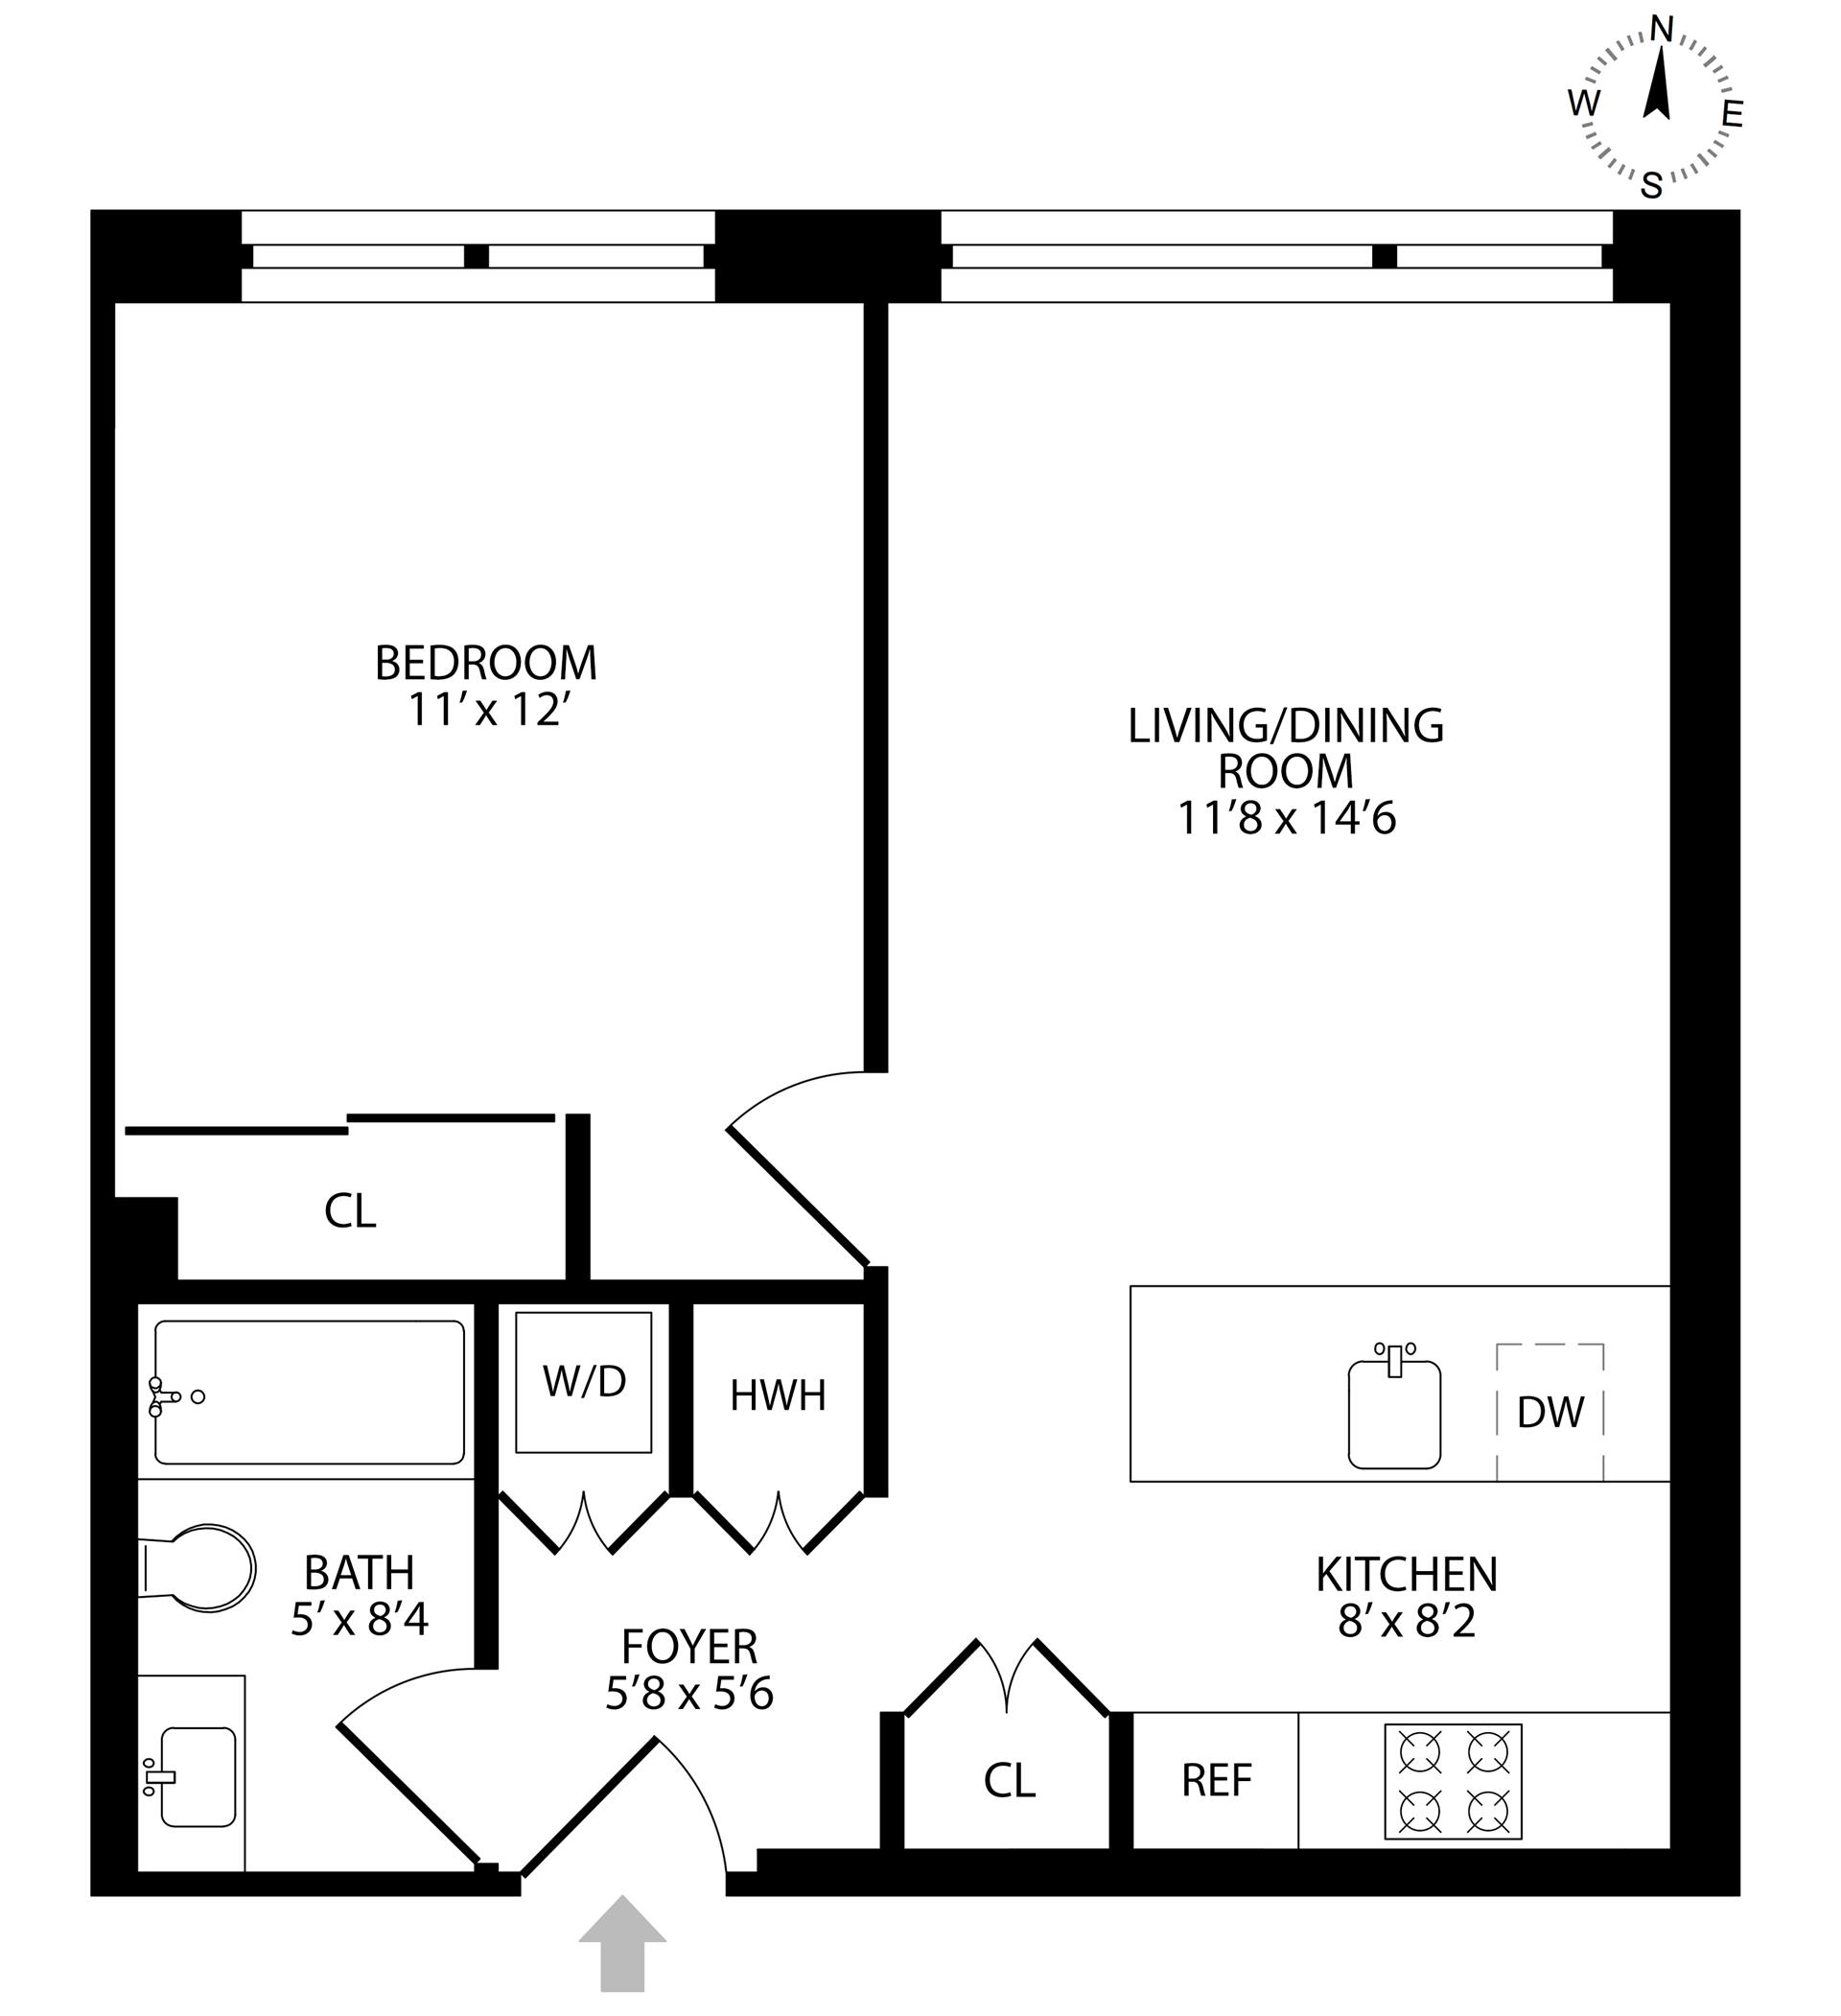 Floor plan of 204 Monroe St, 3A - Bedford - Stuyvesant, New York